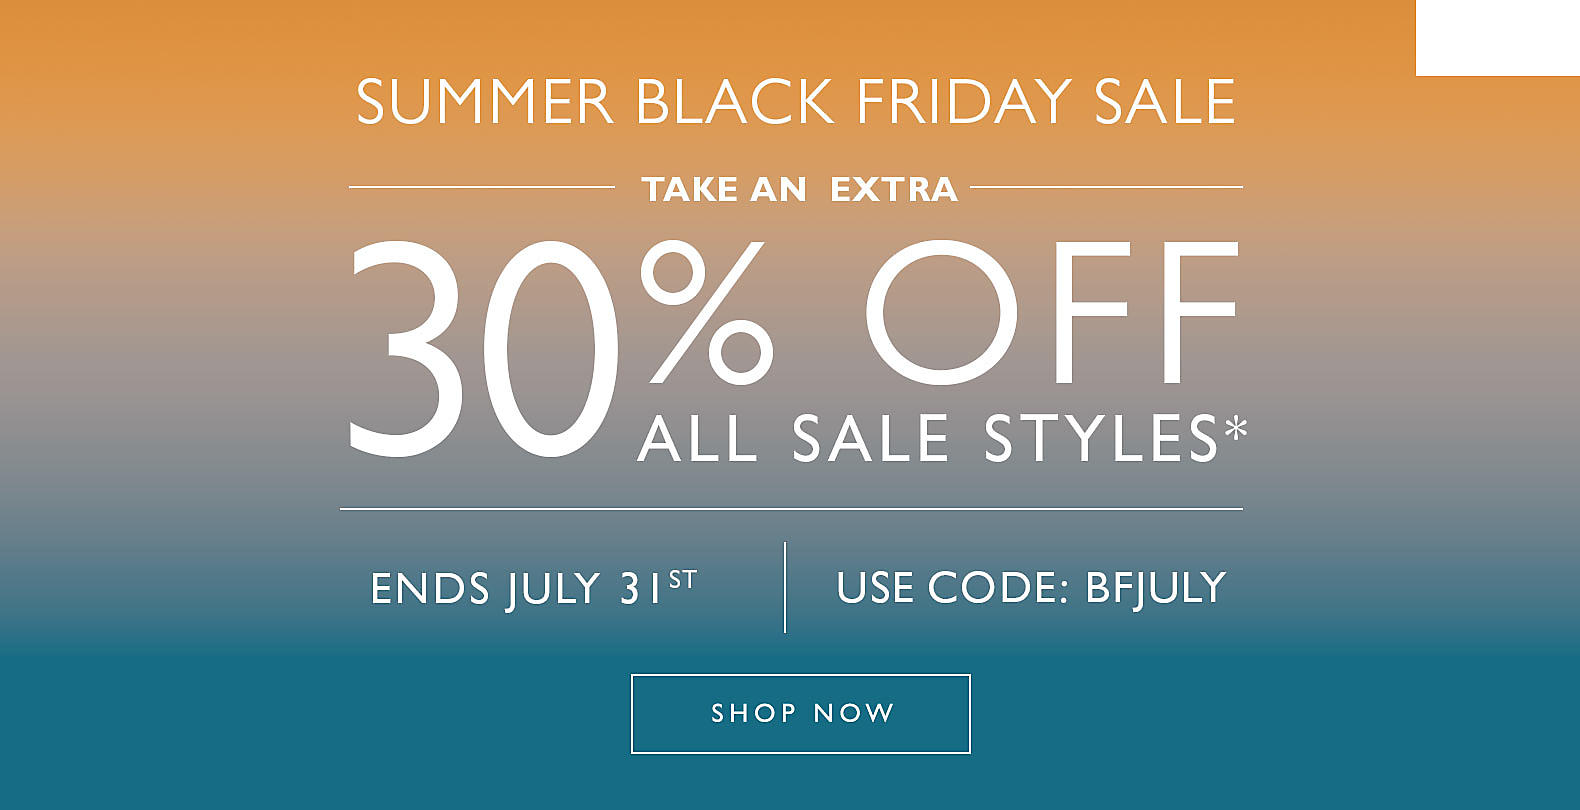 Shop Clarks Black Friday in July Sale!